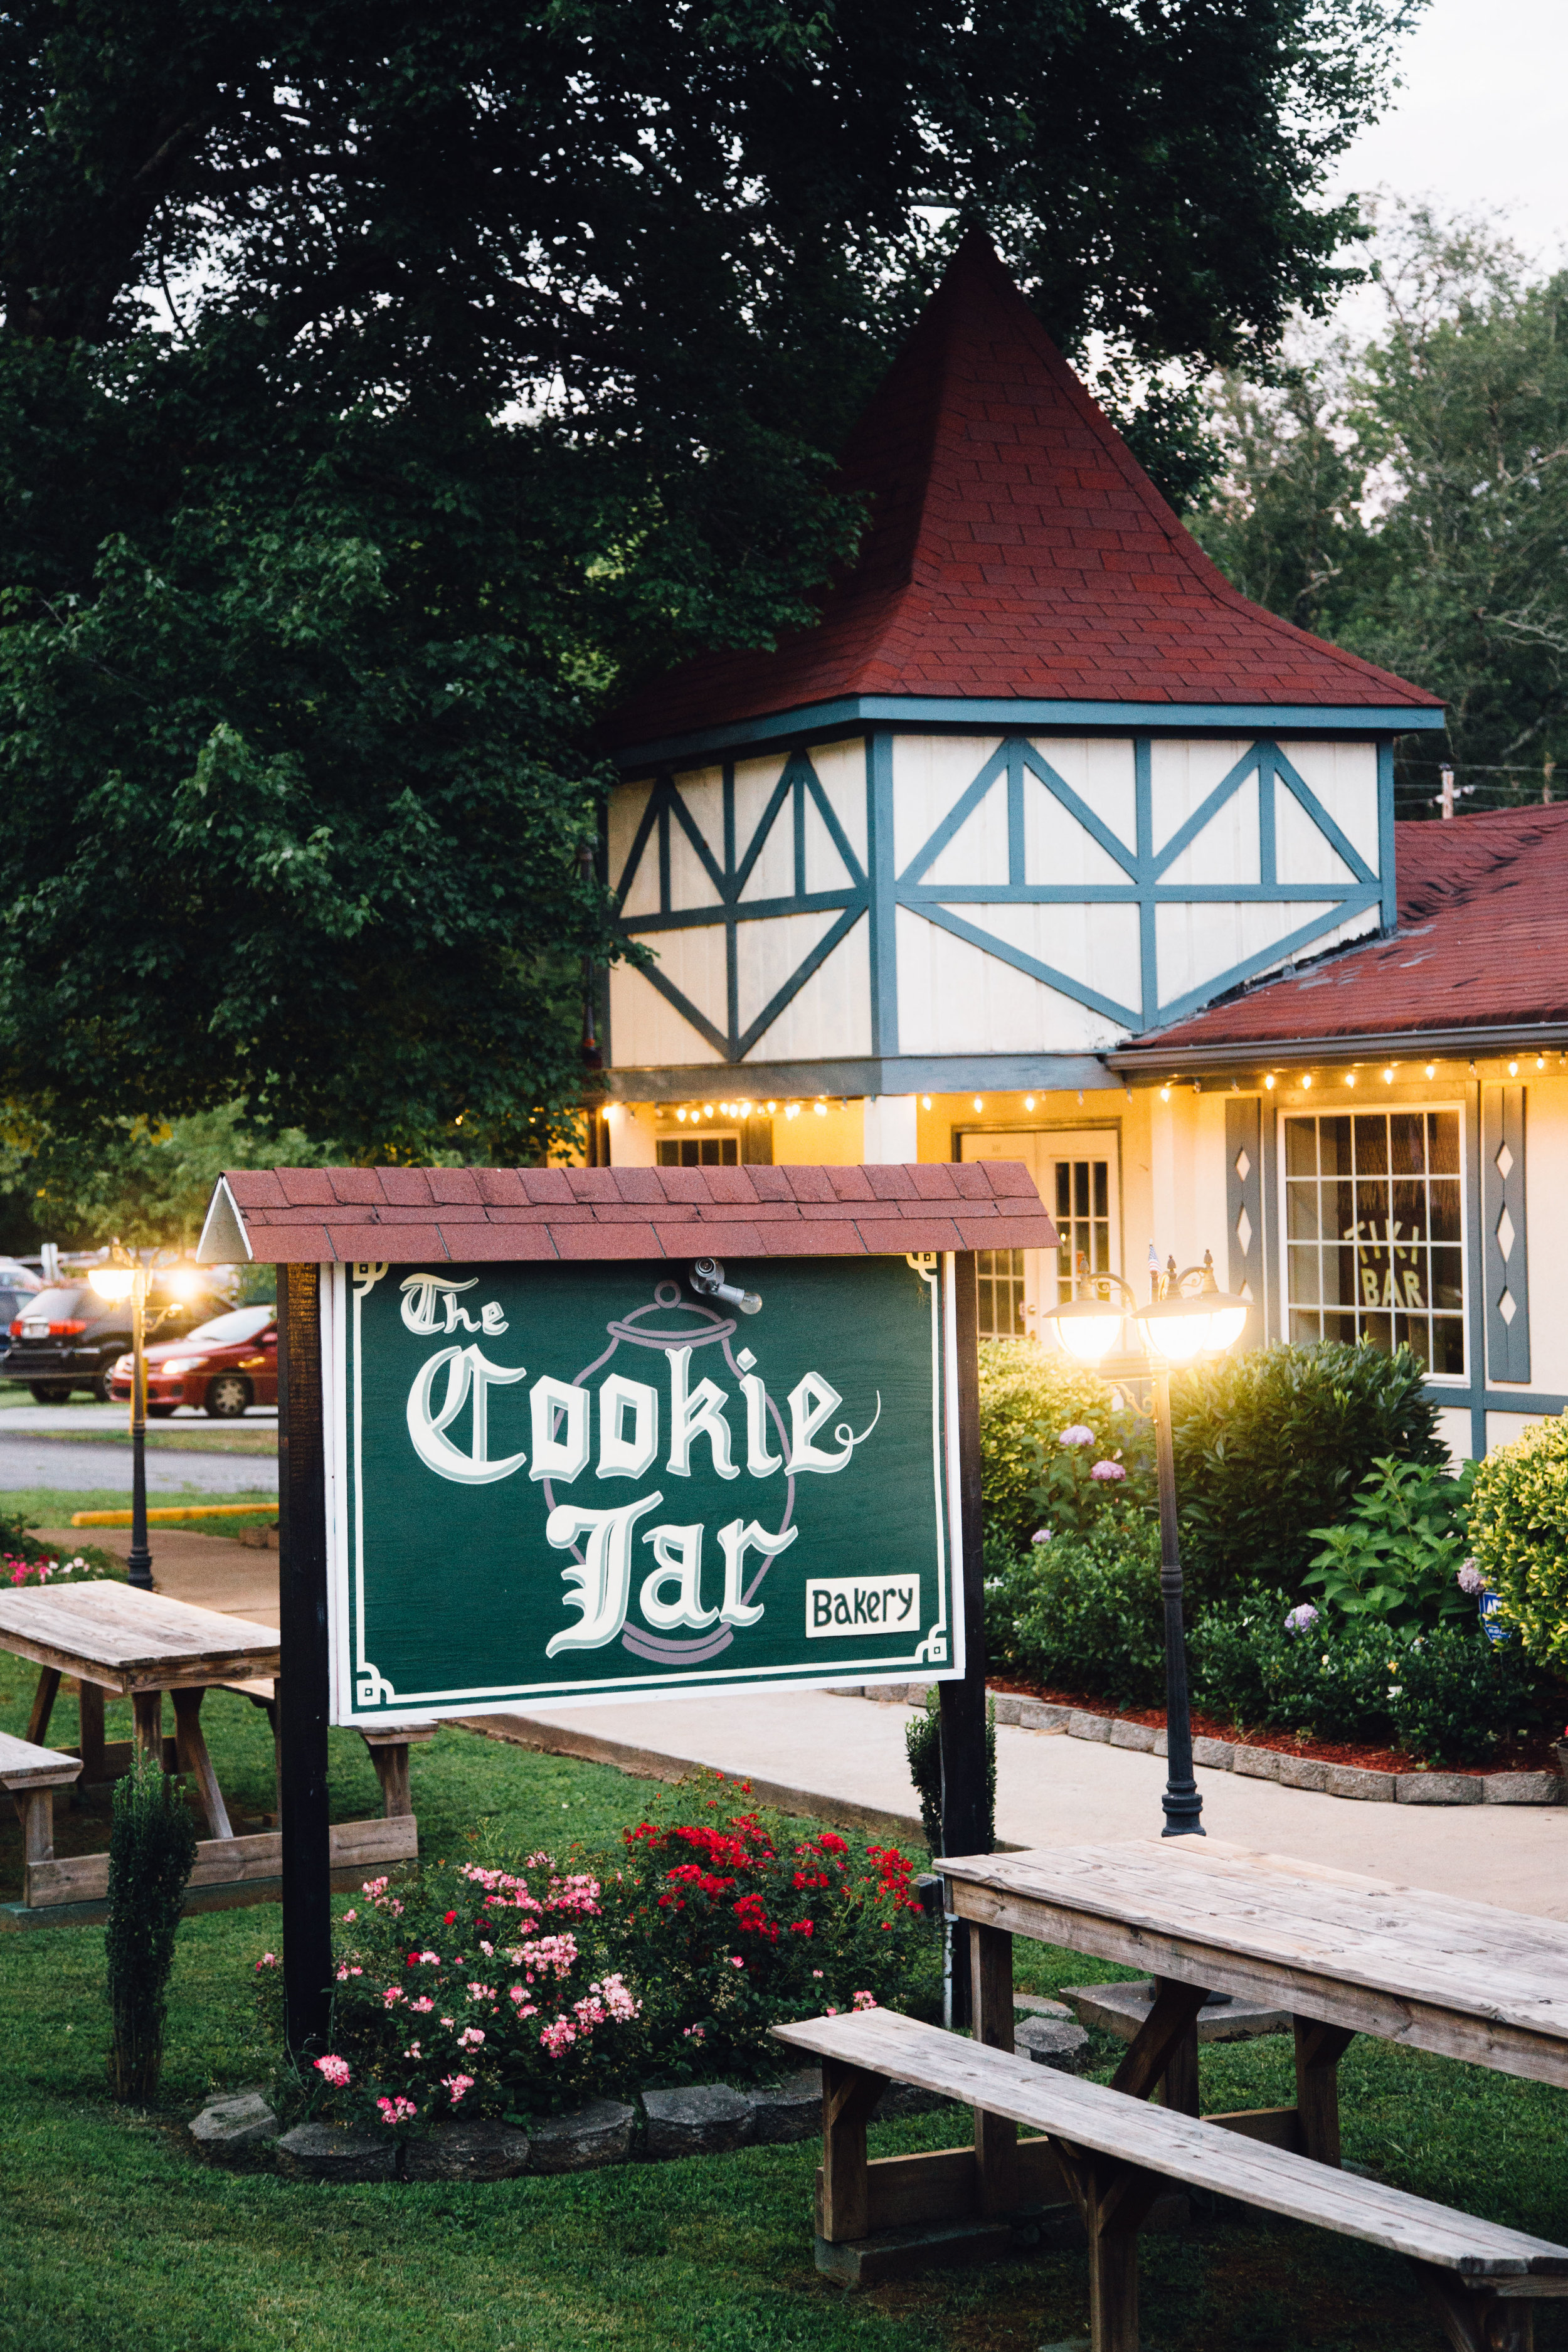 Alpine Helen is a town like no other. Learn about what's in store there for a perfect Georgia summer day!